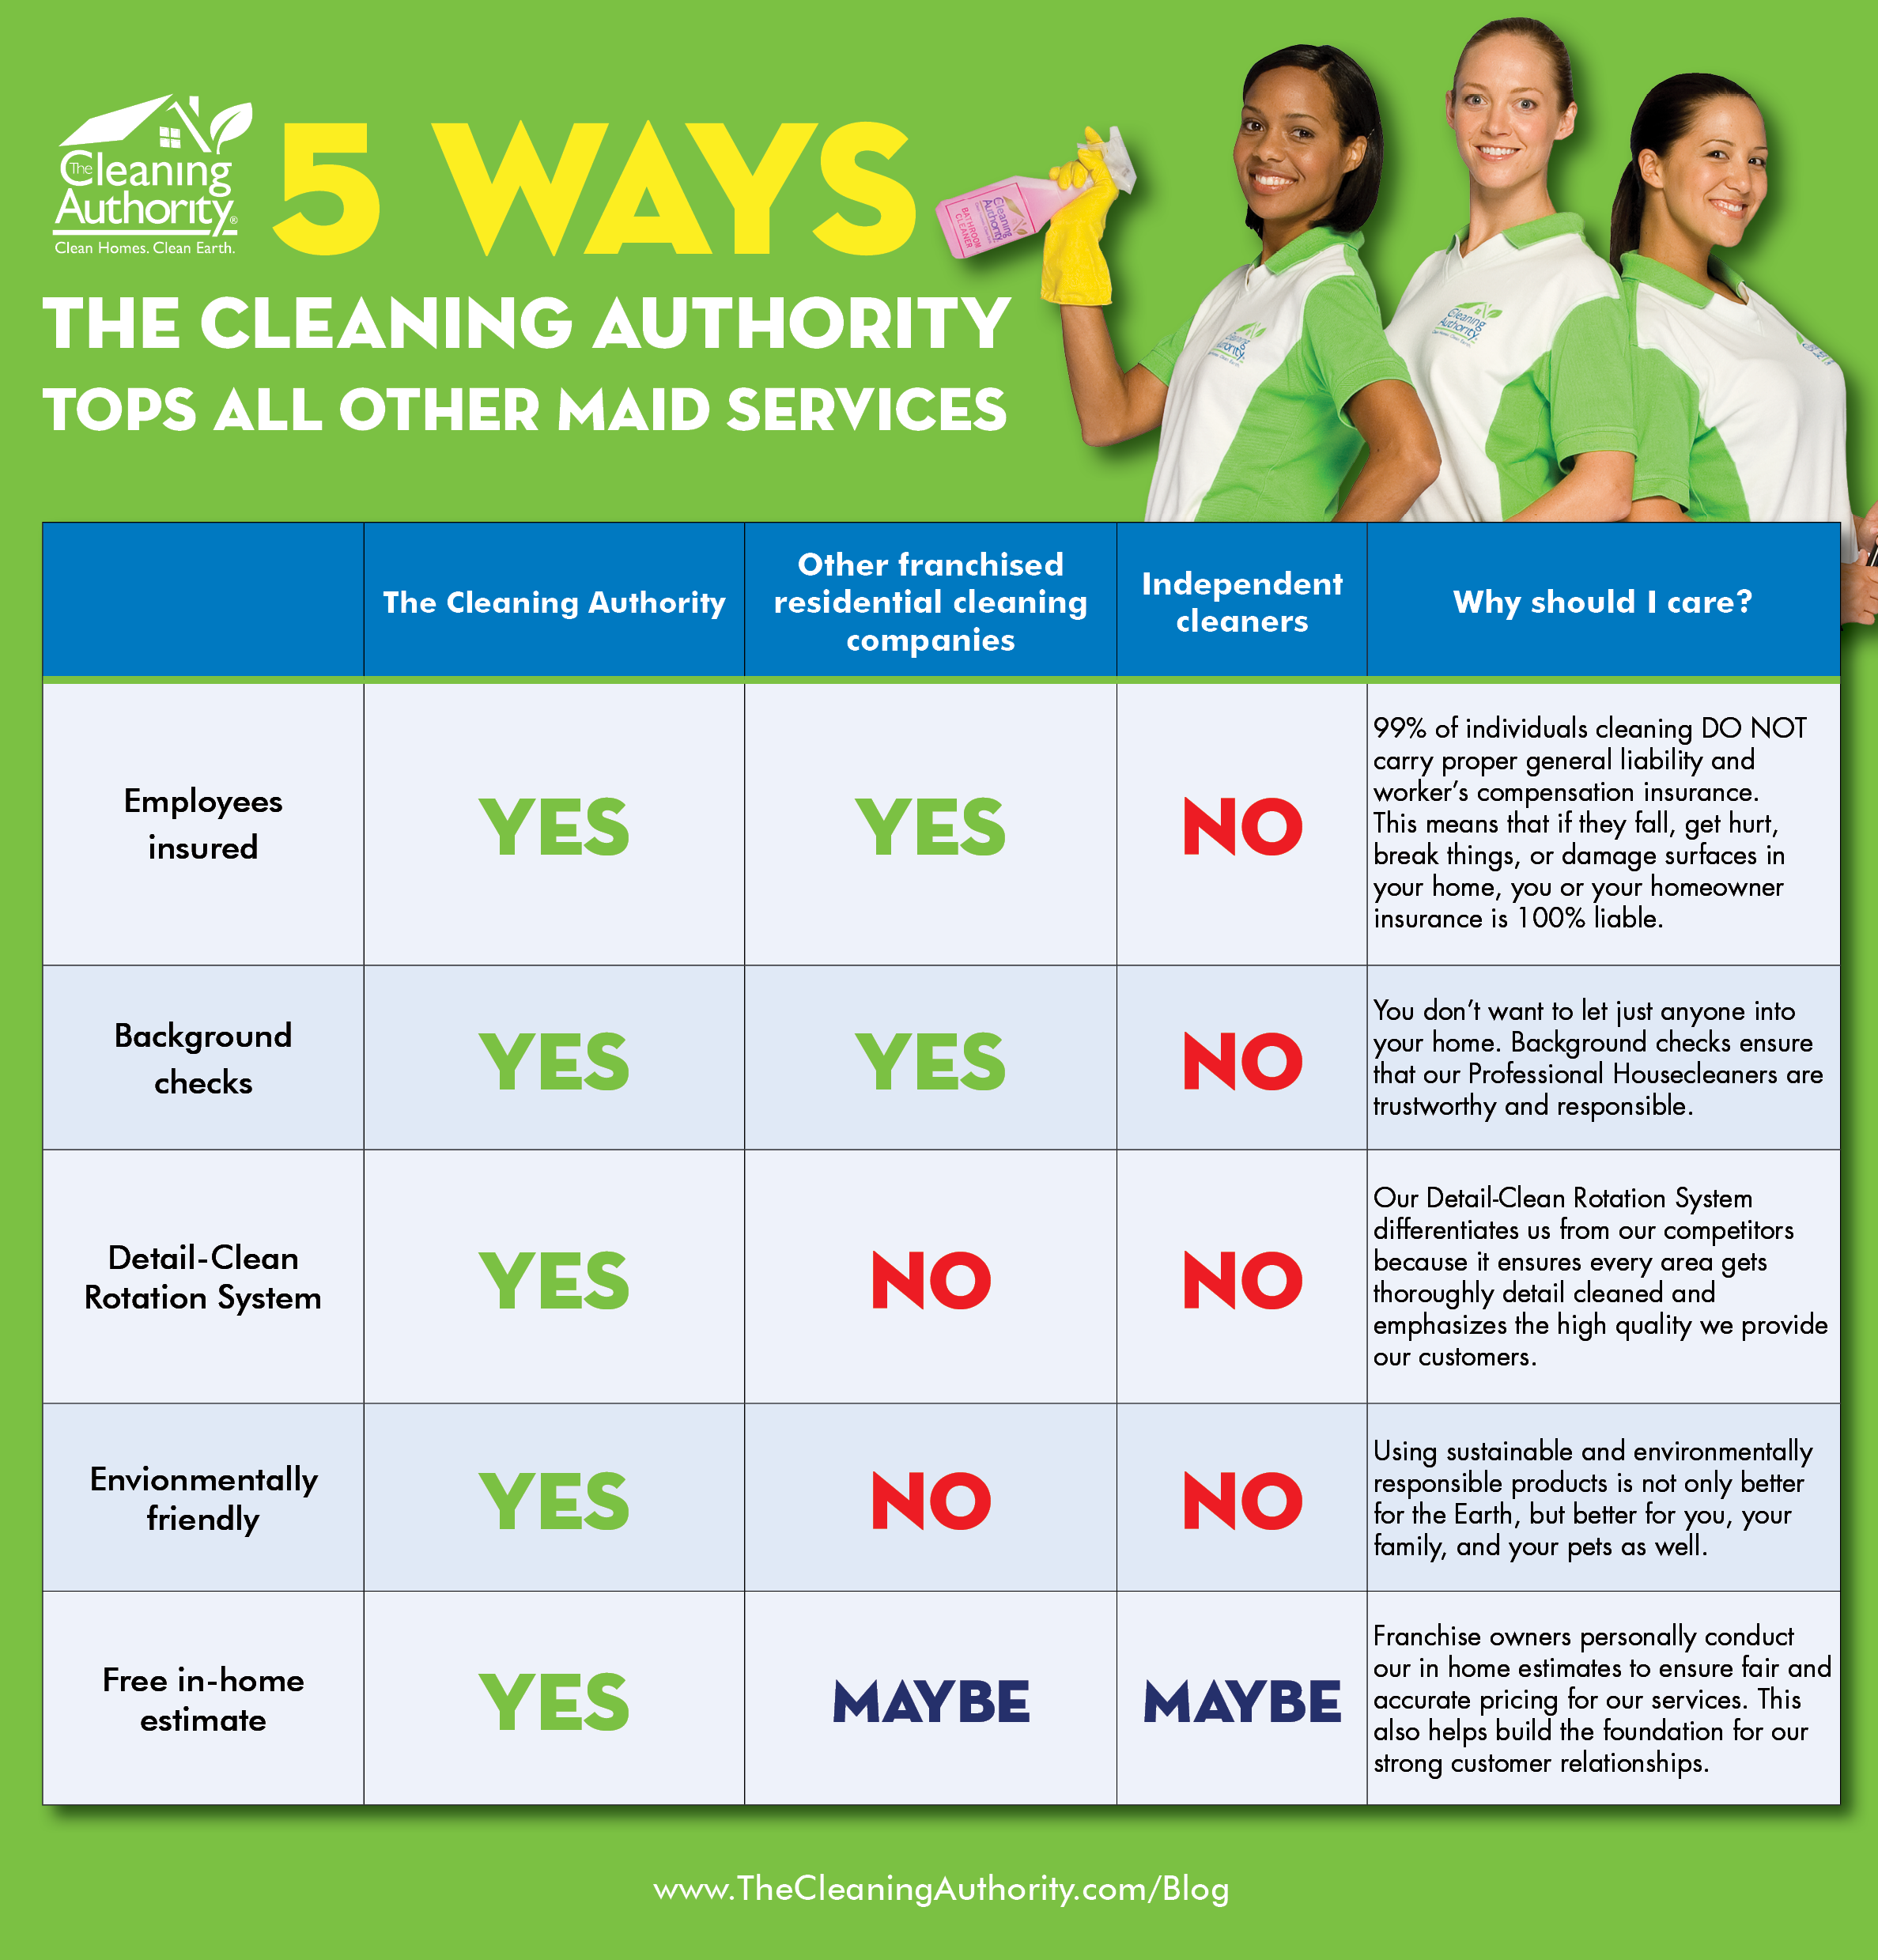 Five Ways The Cleaning Authority Tops Other Maid Services infographic